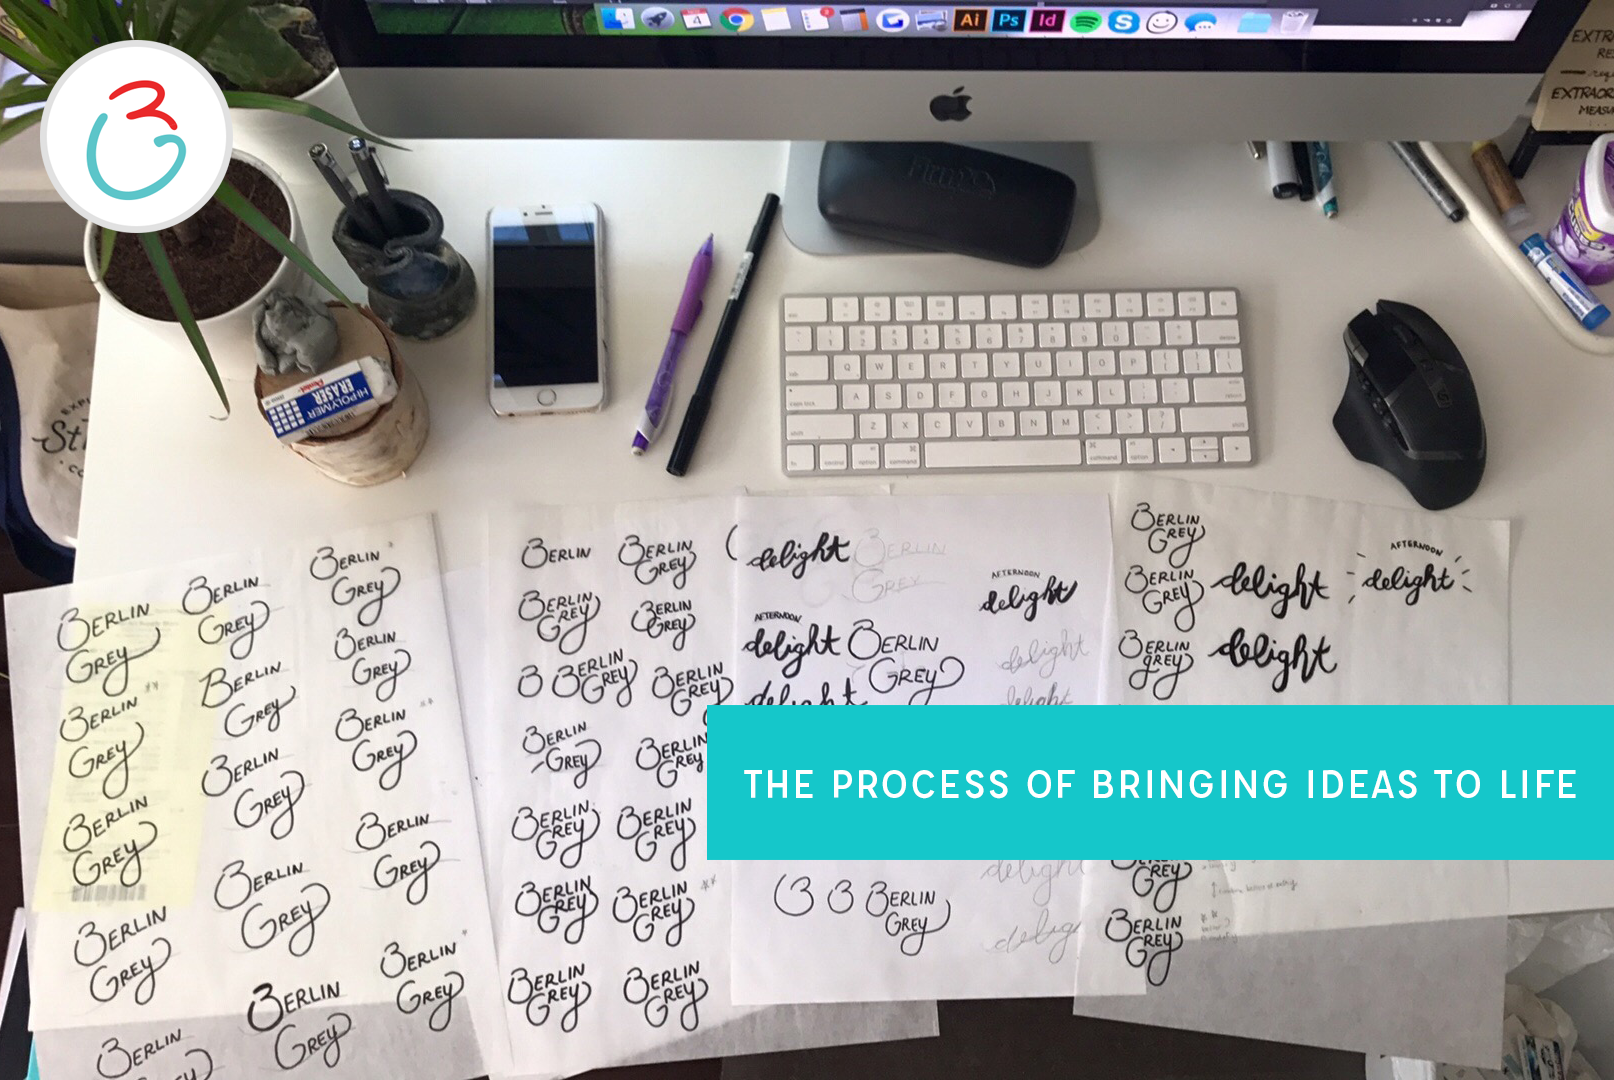 berlin grey creative design studio process of creating a logo